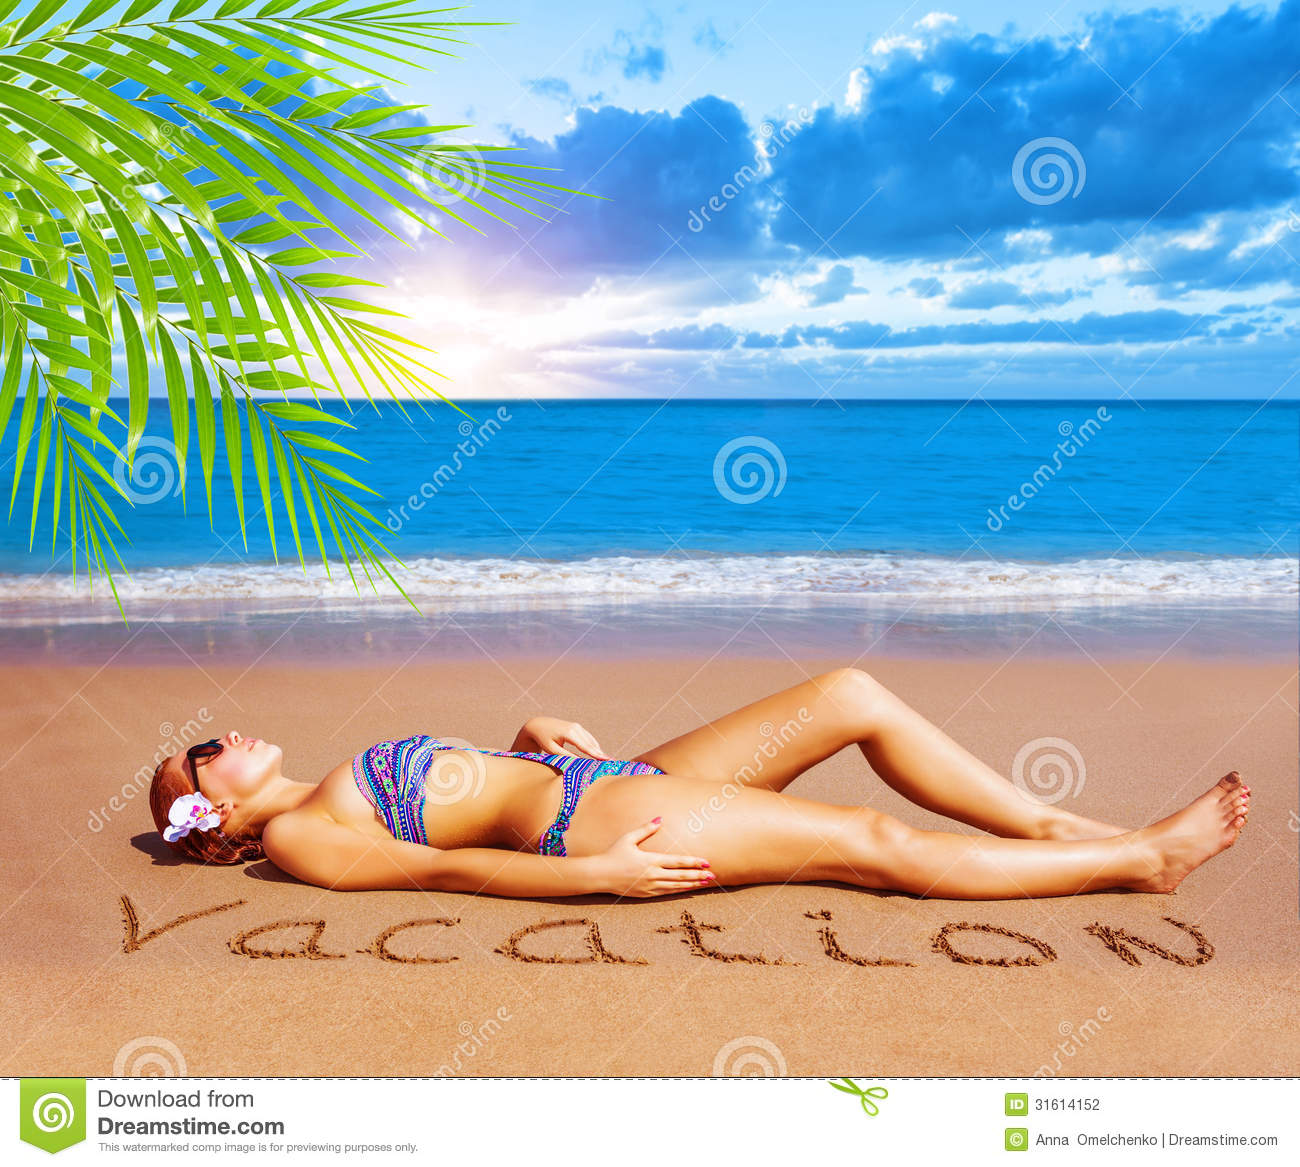 ... dayspa, luxury tropical resort, summer holiday and vacation concept: dreamstime.com/stock-photography-sexy-woman-beach-laying-down...